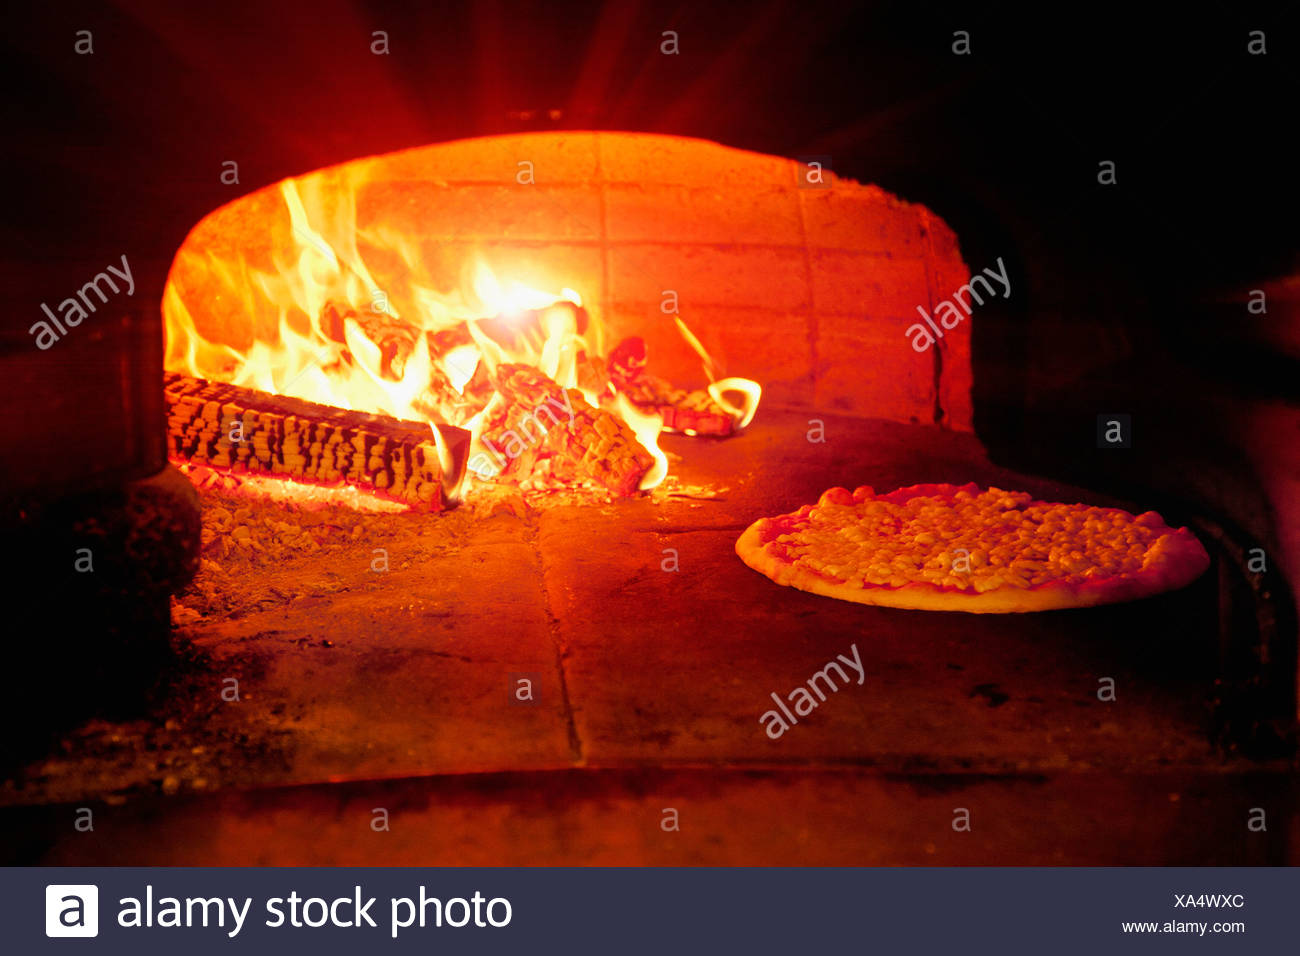 Pizza baking in wood burning oven - Stock Image